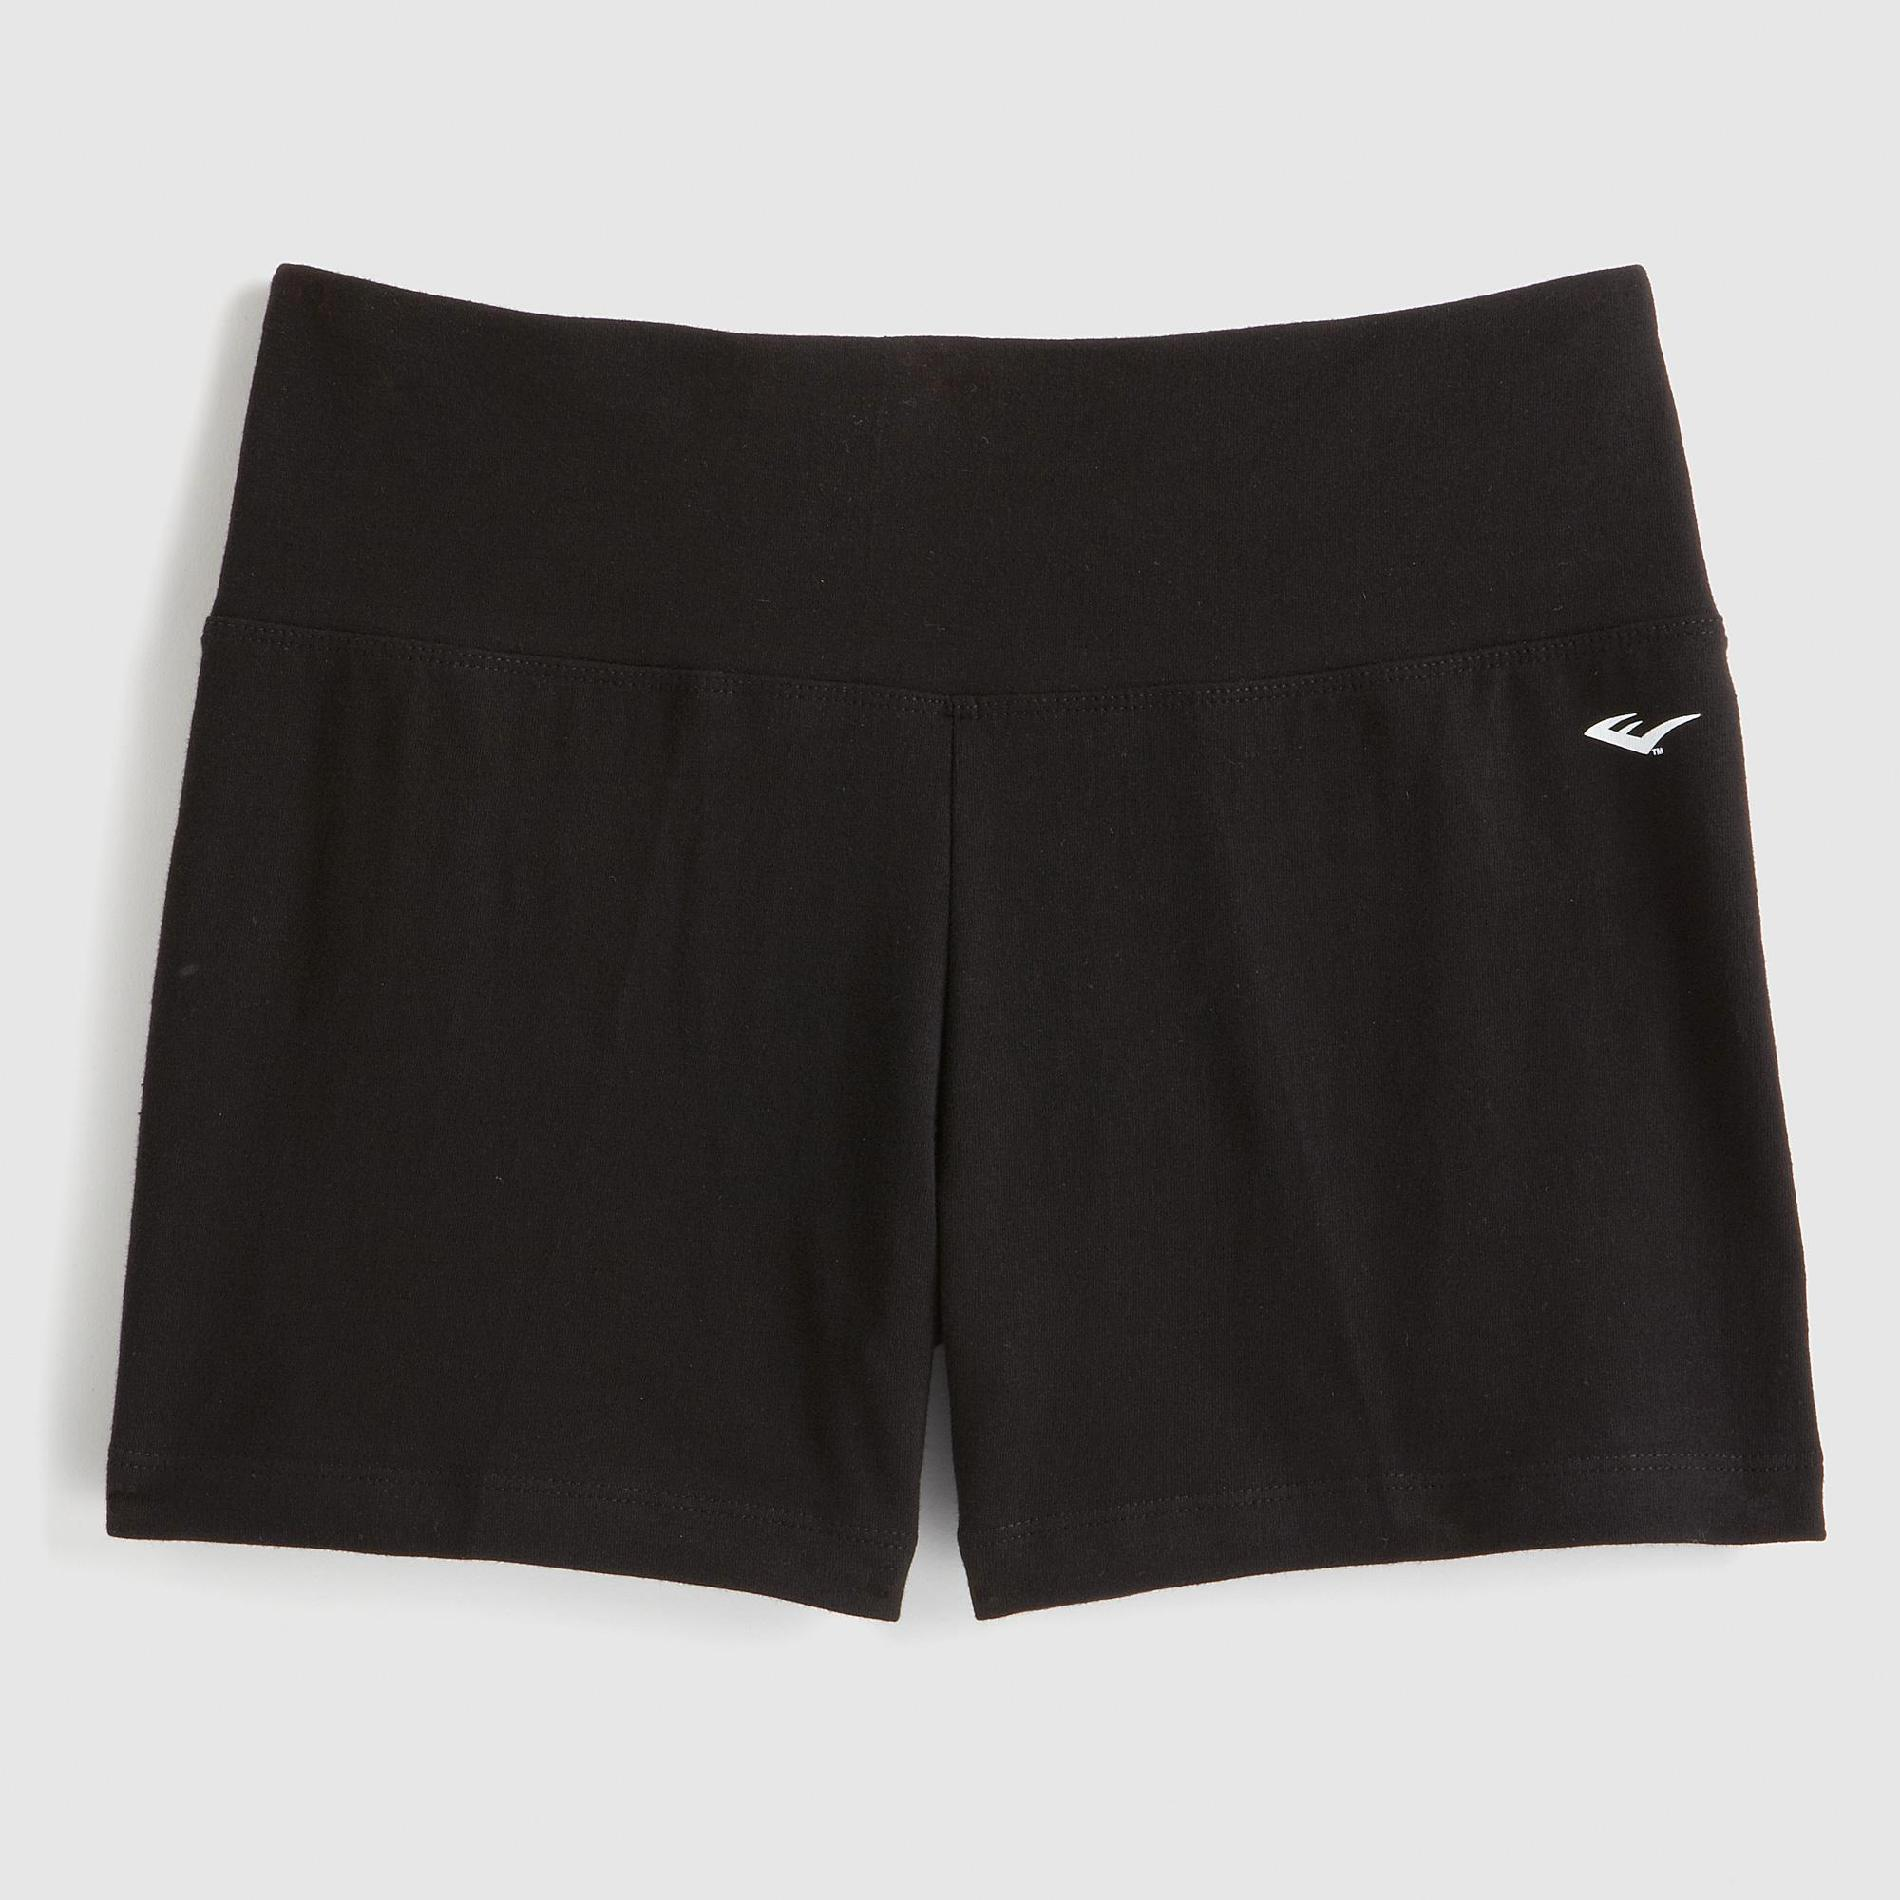 Everlast® Women's Banded Athletic Shorts at Sears.com